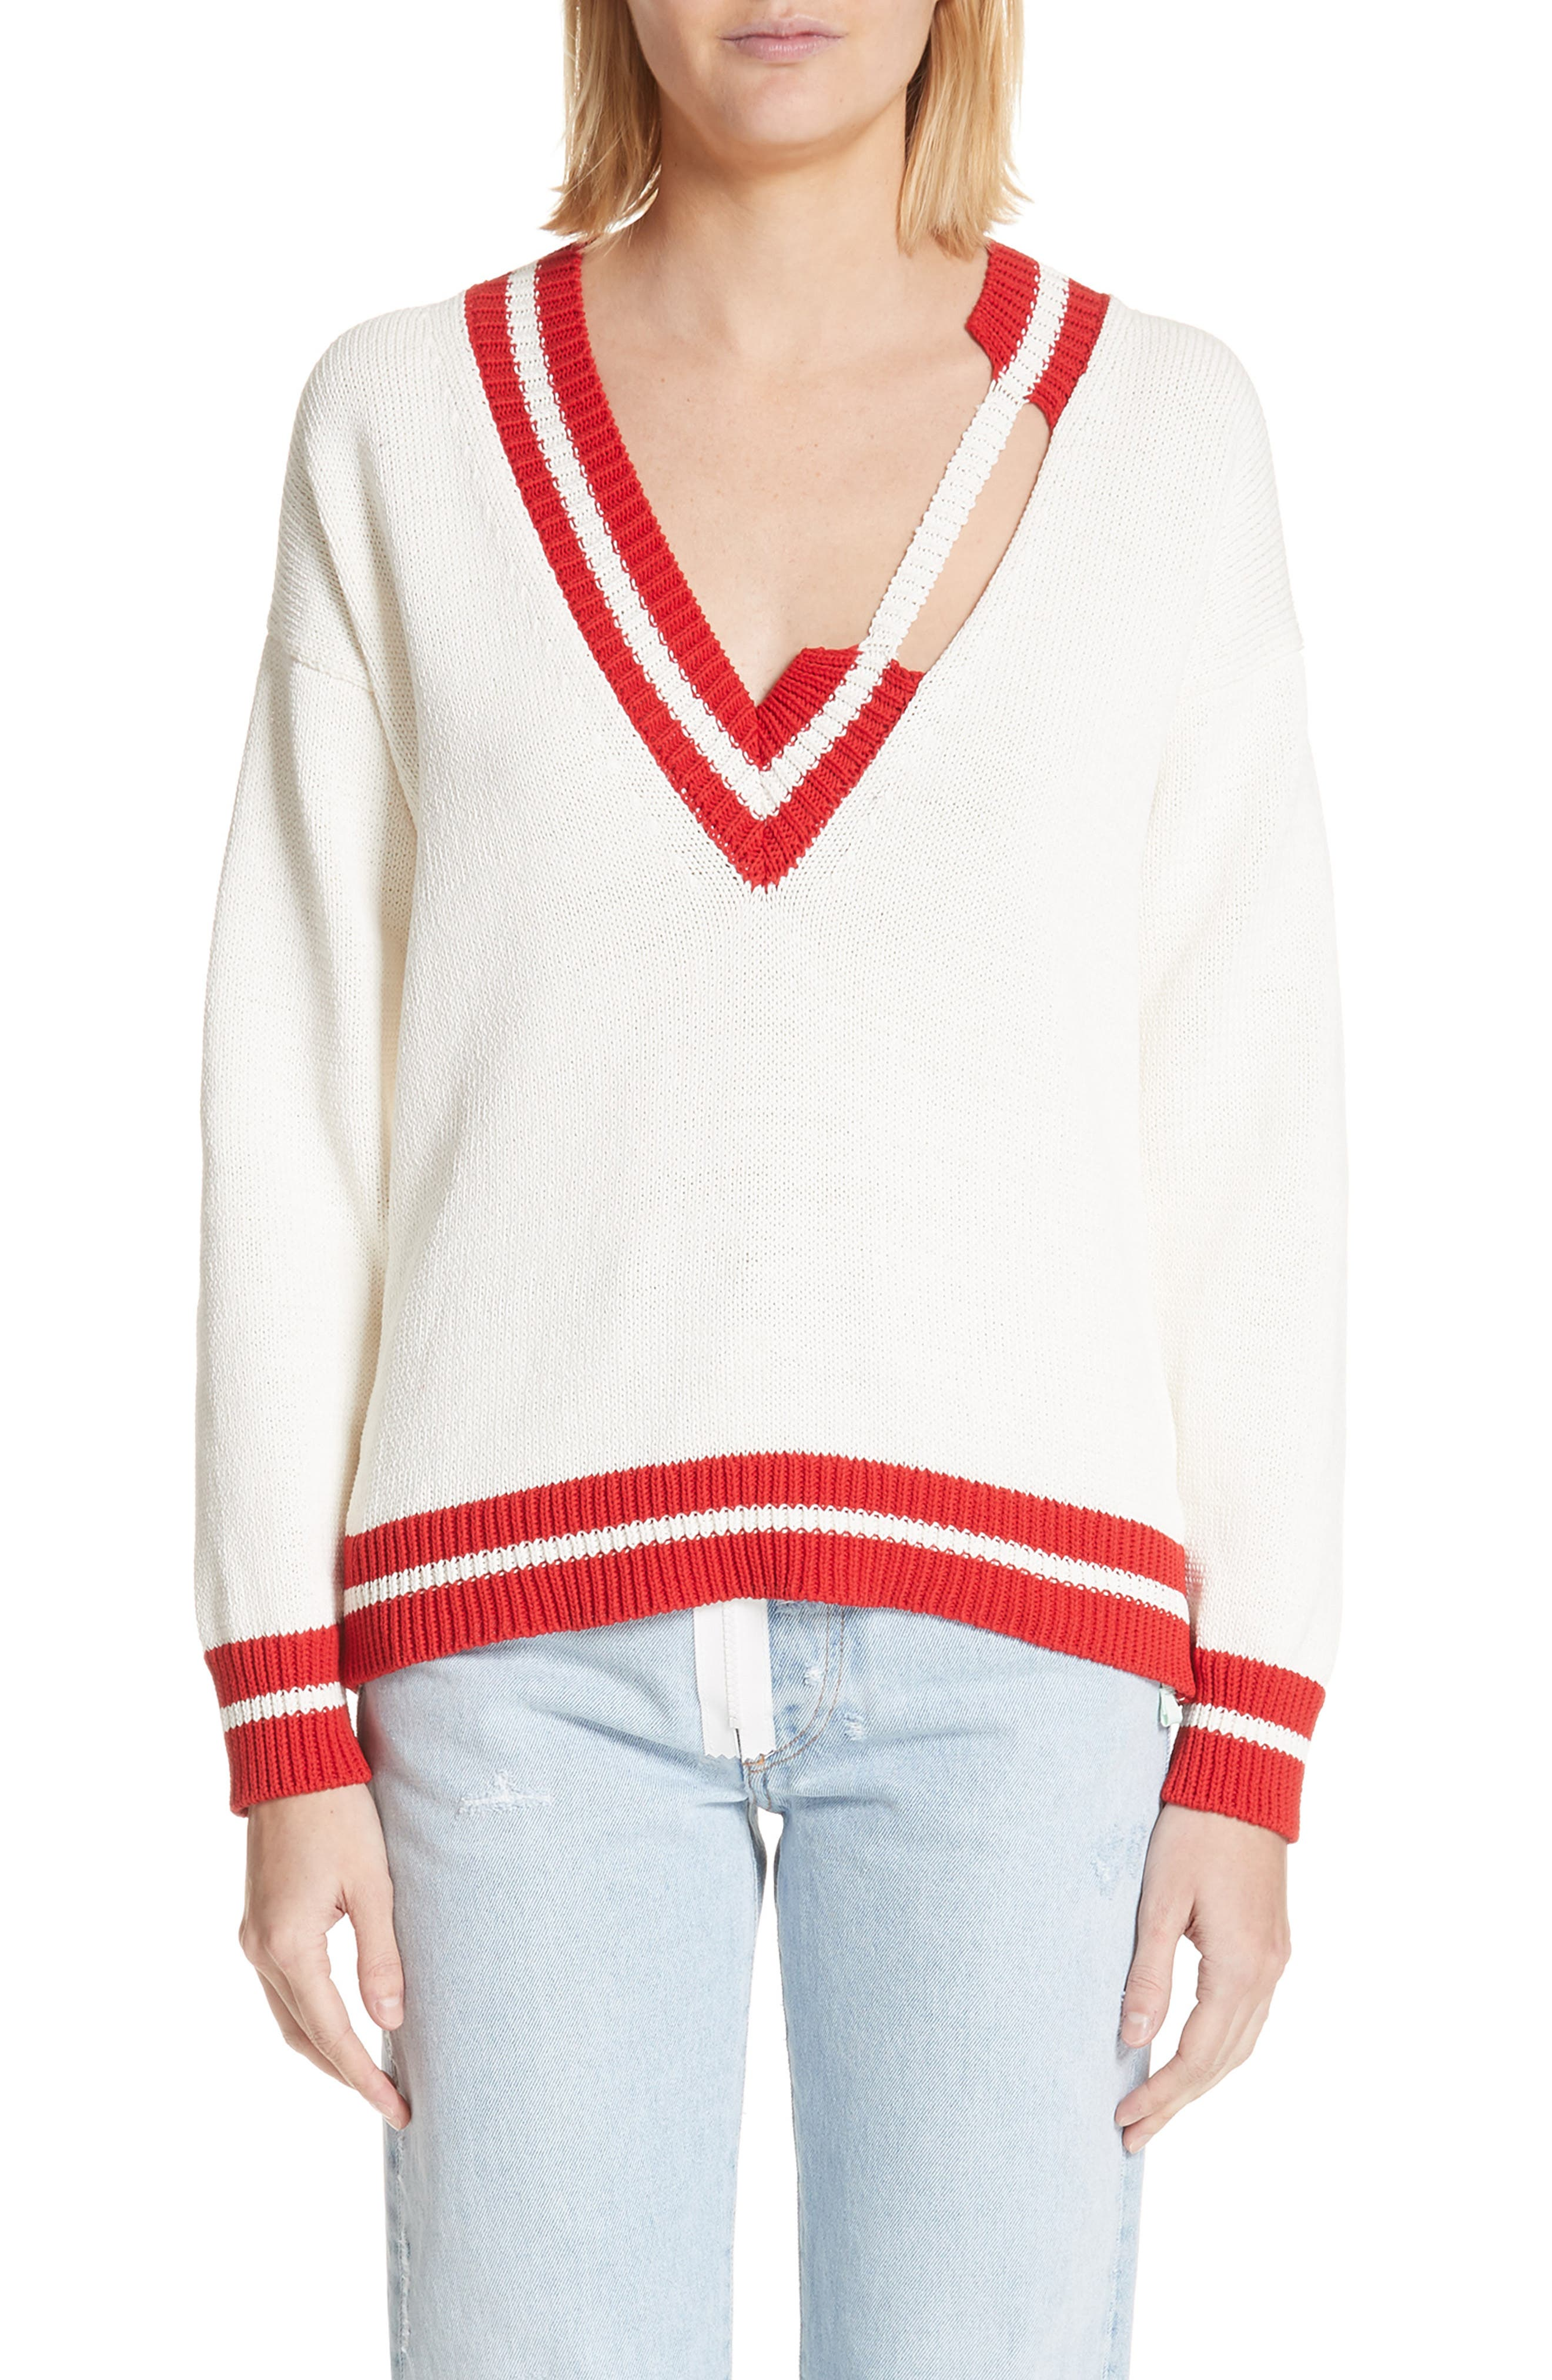 Off-White Oversized Distressed Tennis Sweater